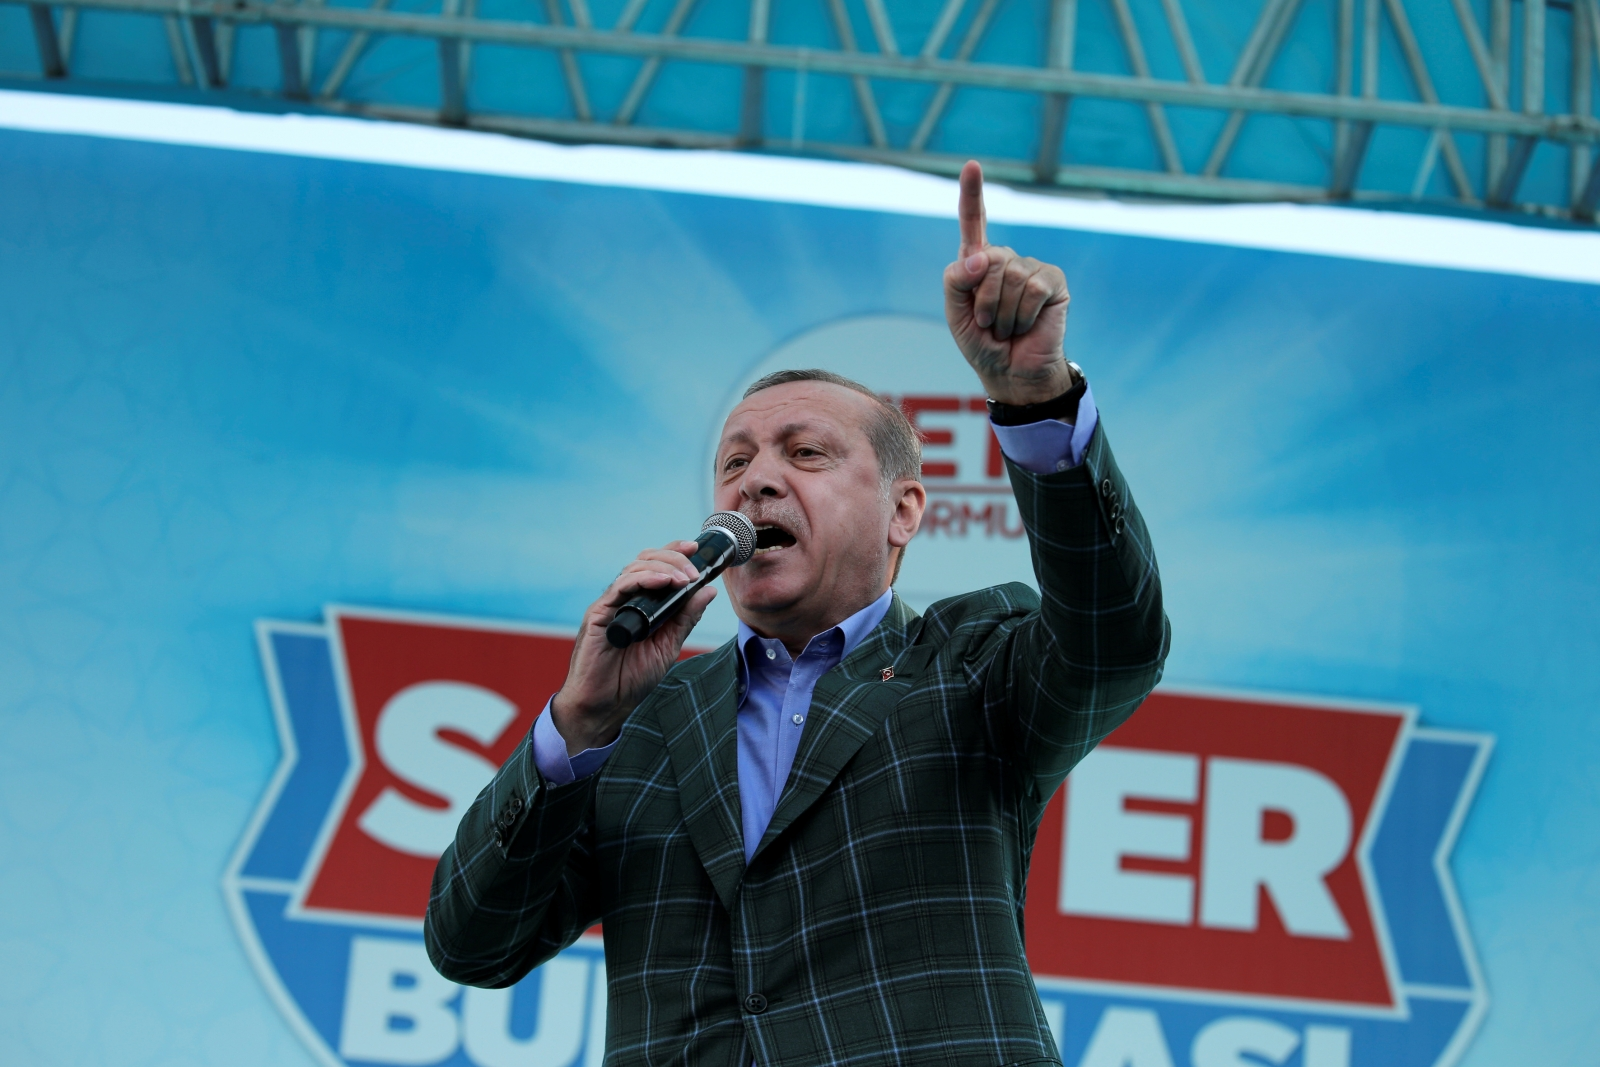 Erdogan hints at referendum on Turkey's European Union accession